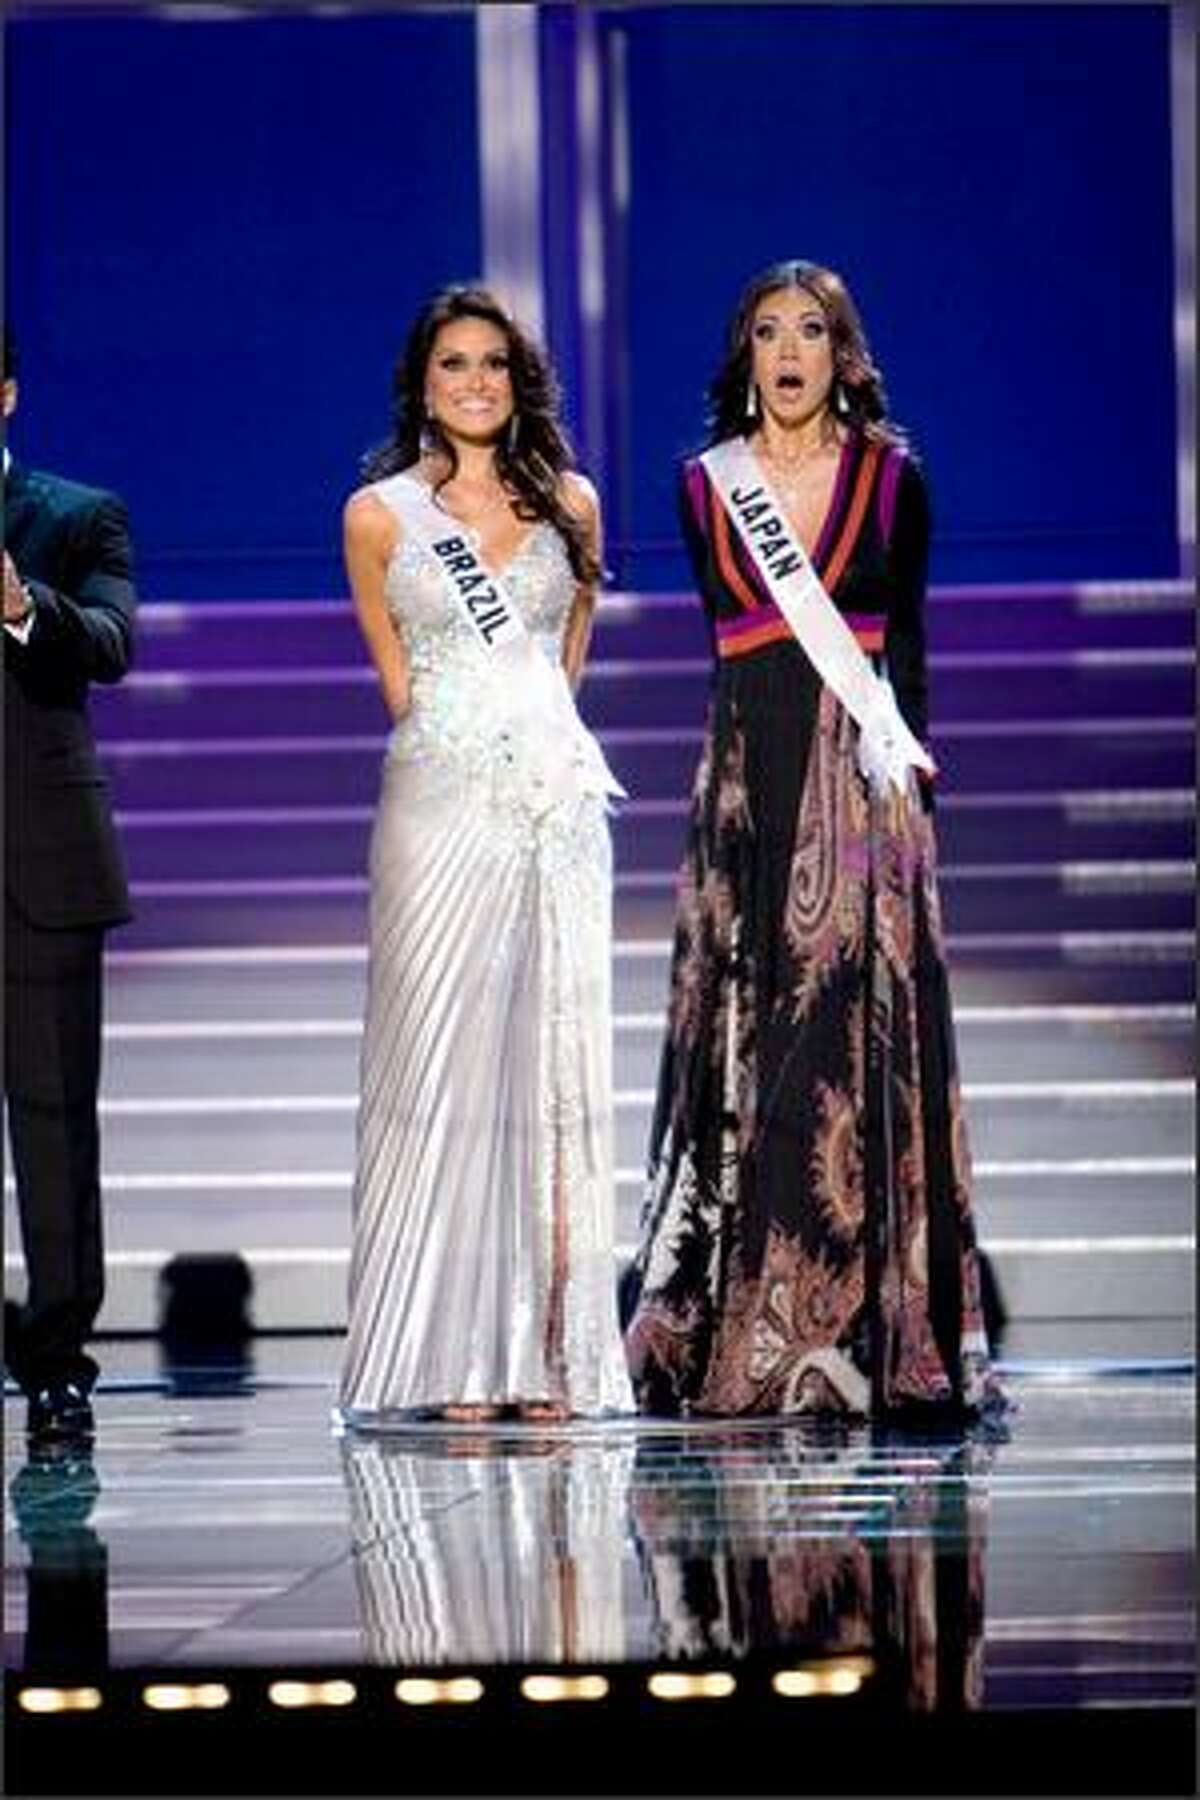 Miss Japan Riyo Mori, right, reacts as she is named Miss Universe 2007. First runner-up Natalia Guimaraes of Brazil is at left.